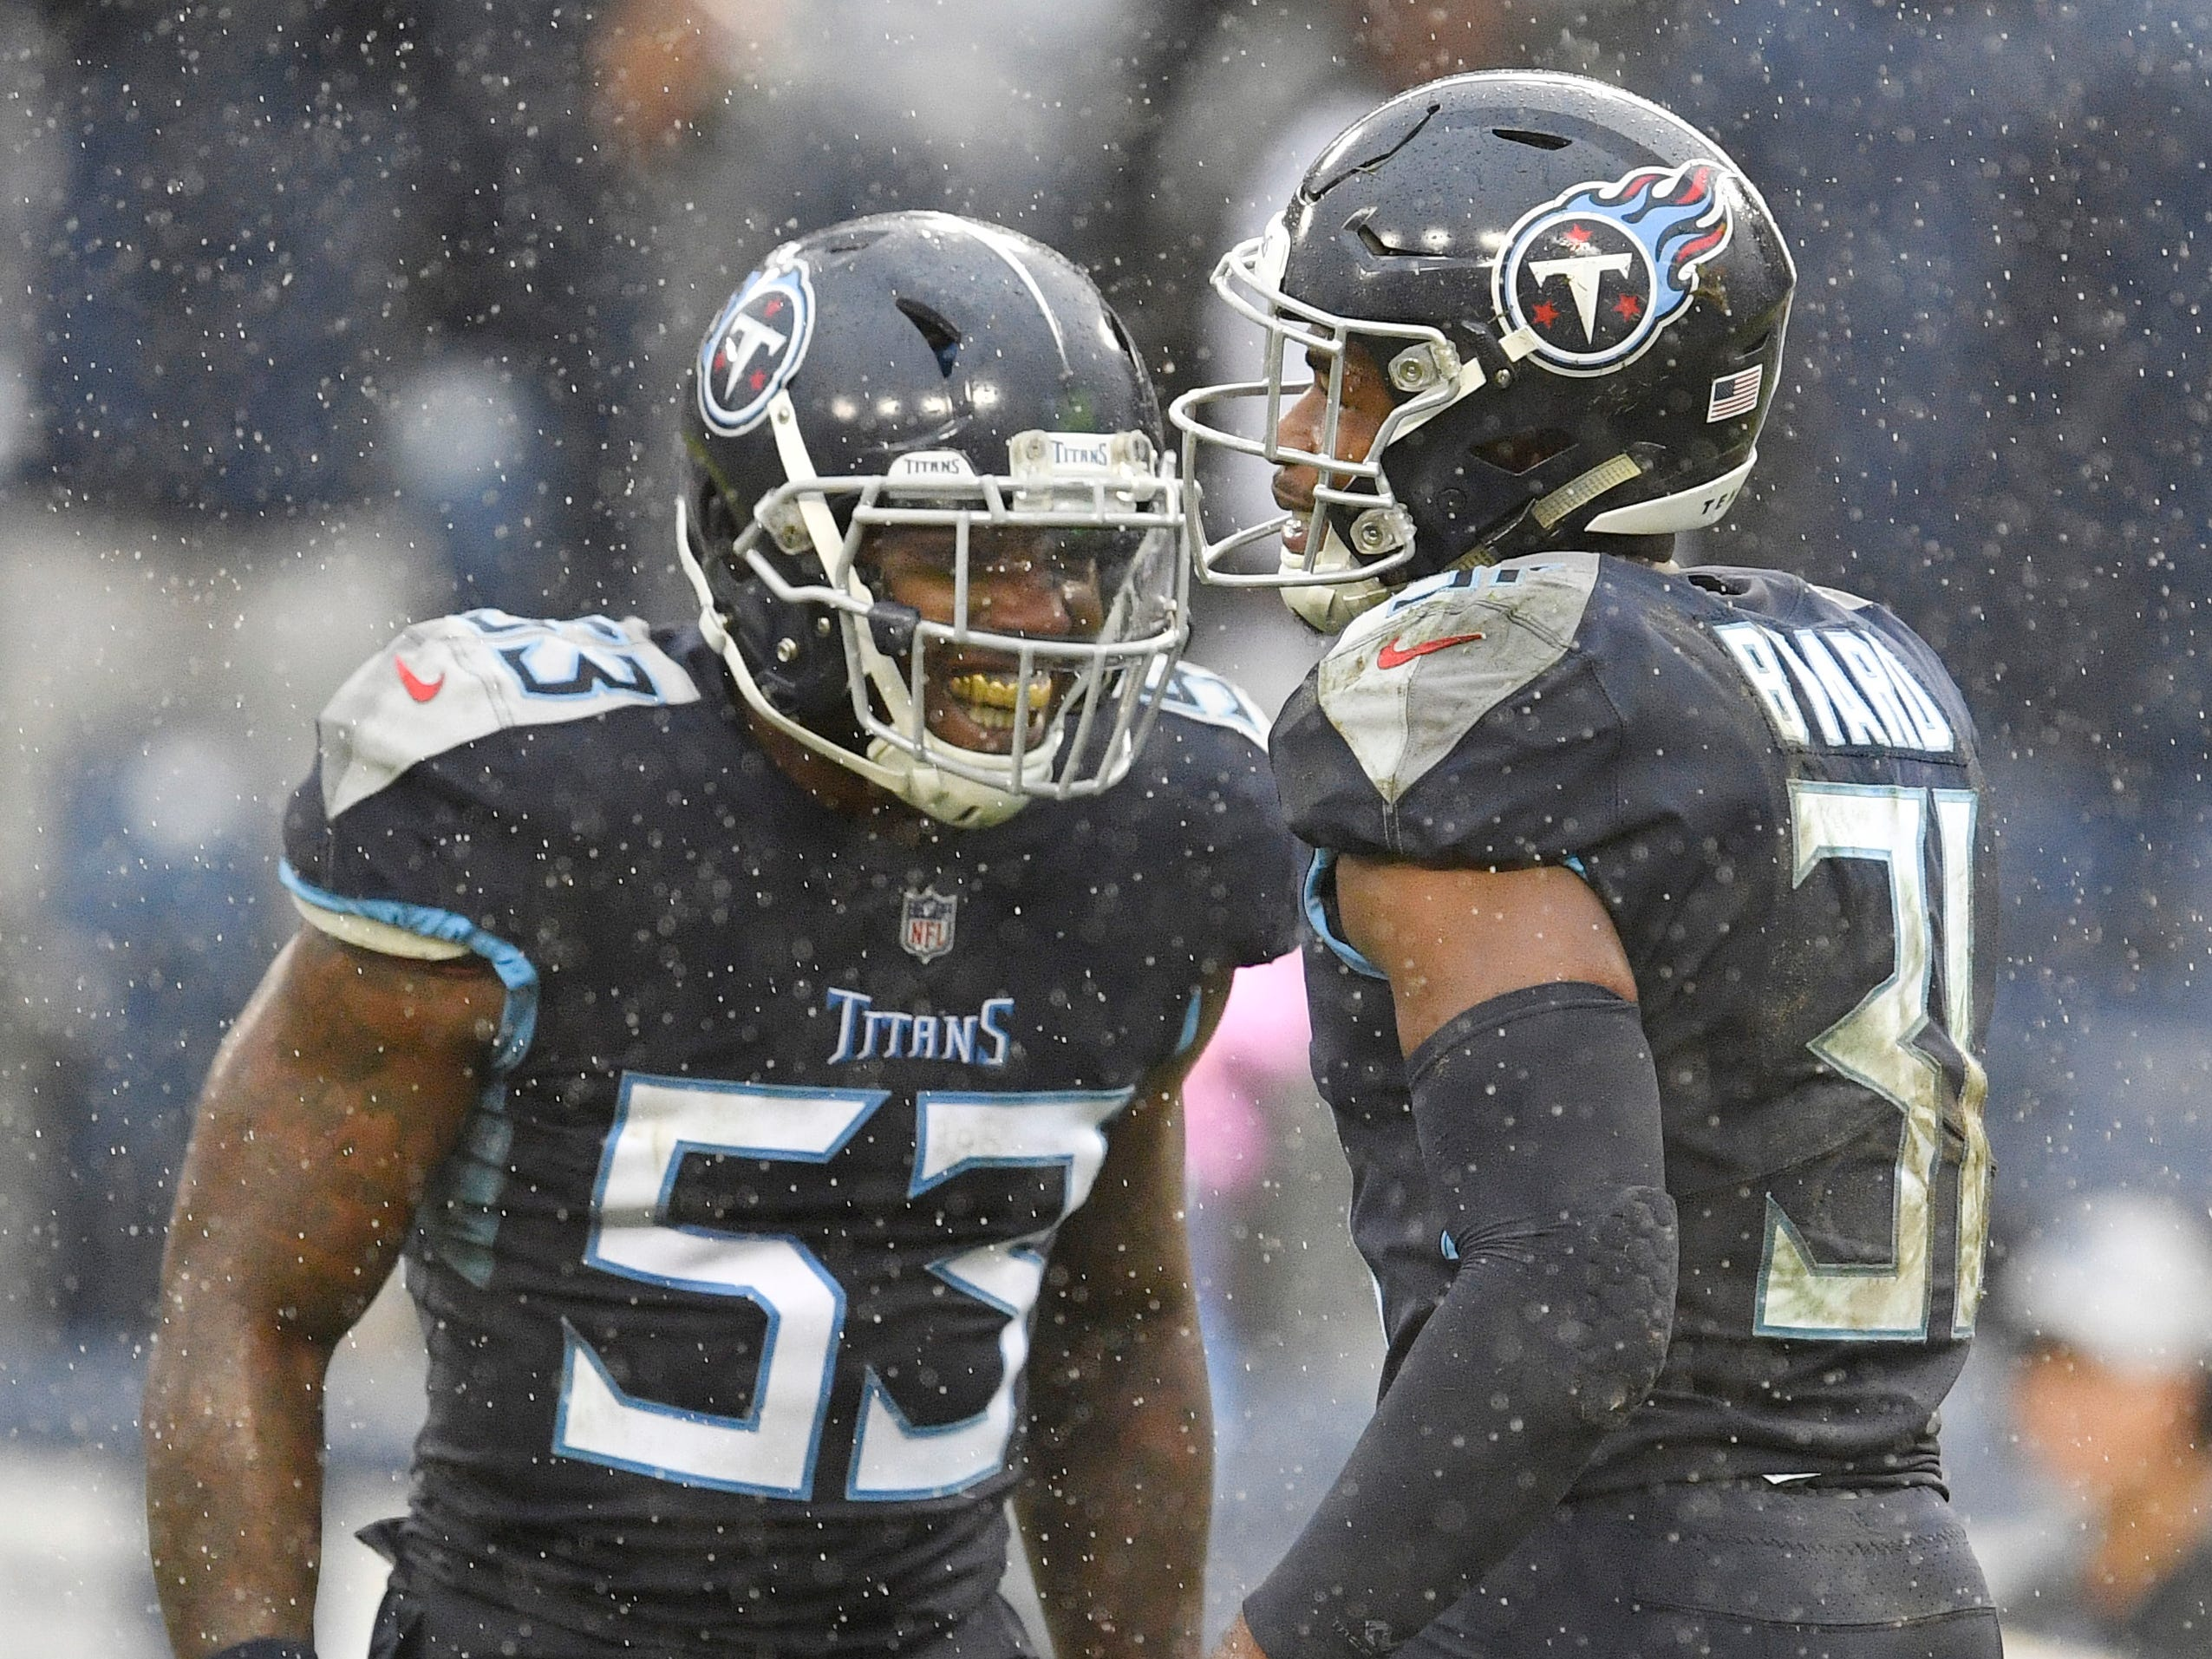 Titans linebacker Daren Bates (53) and free safety Kevin Byard (31) celebrate Byard's interception in the second quarter at Nissan Stadium Sunday, Oct. 14, 2018, in Nashville, Tenn.